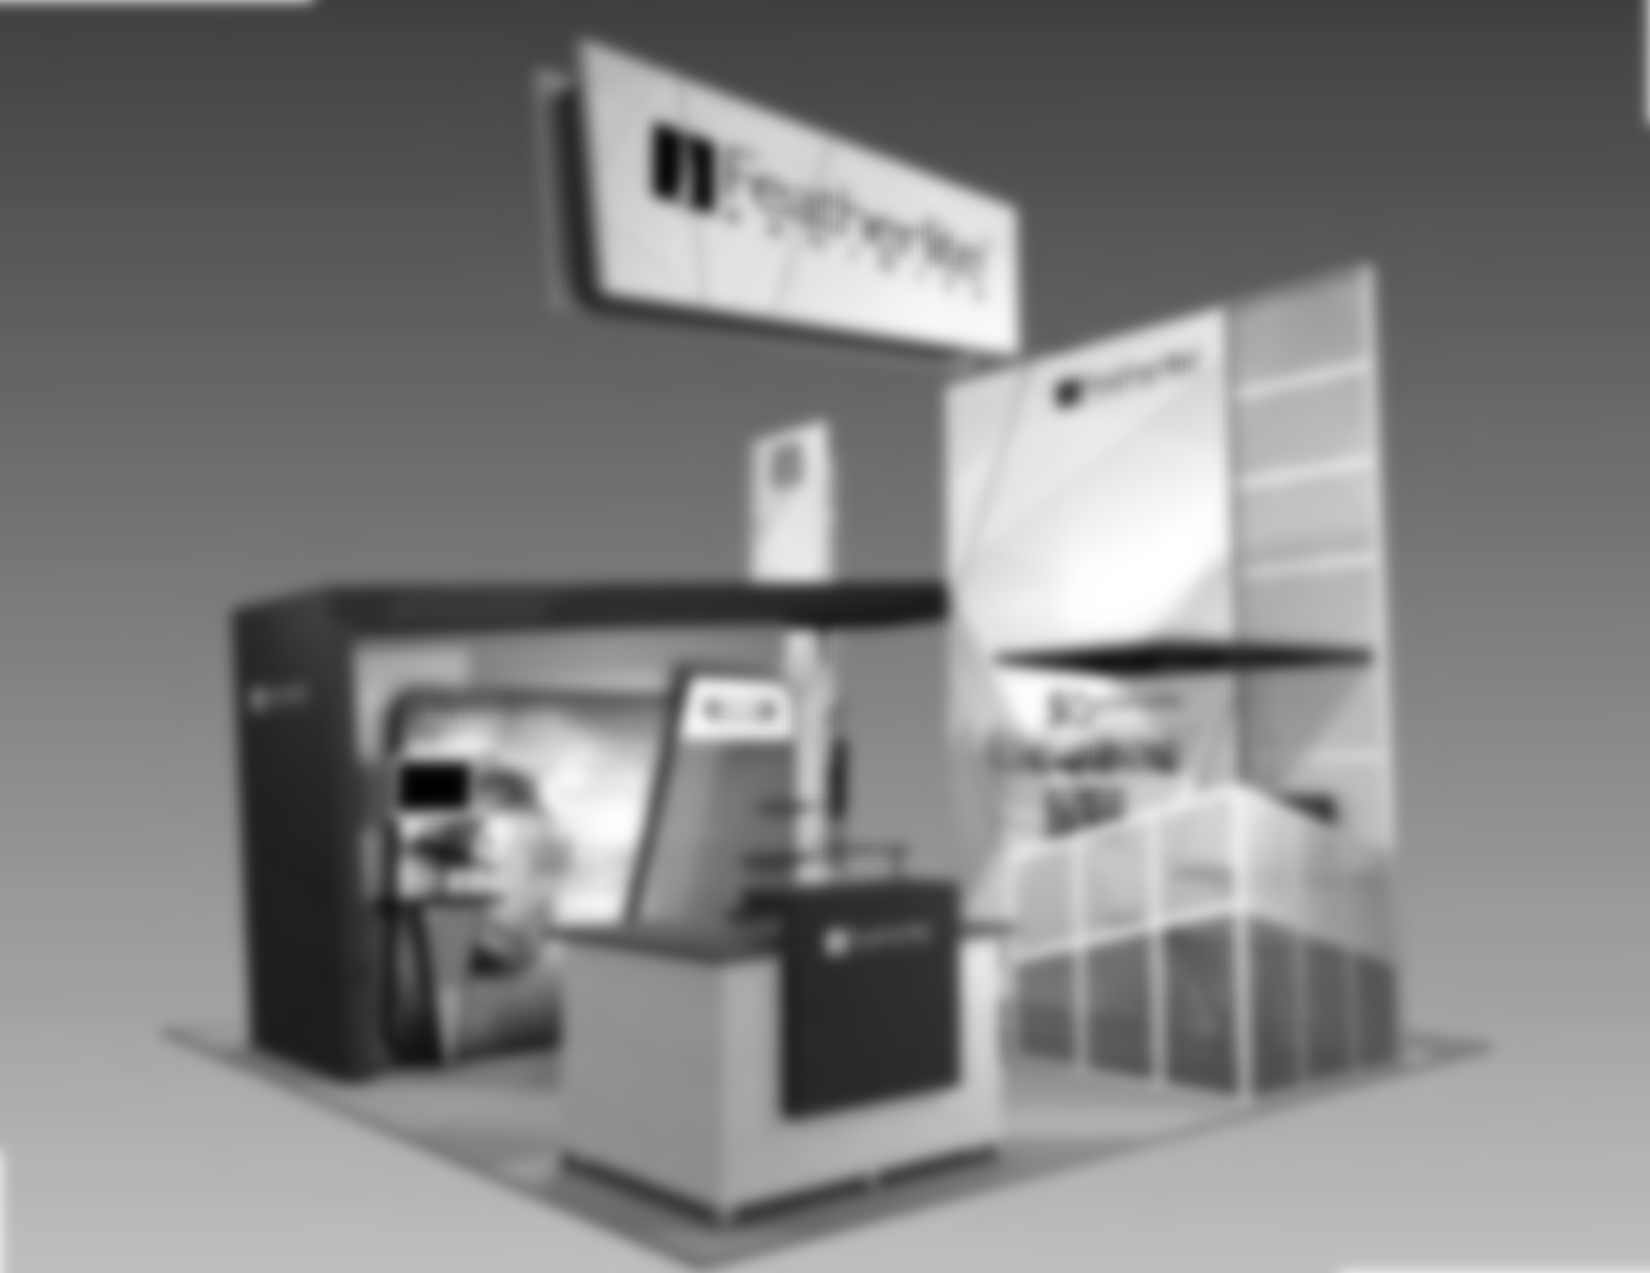 Step 4: - Visit the Trade Show and Obtain Reviews